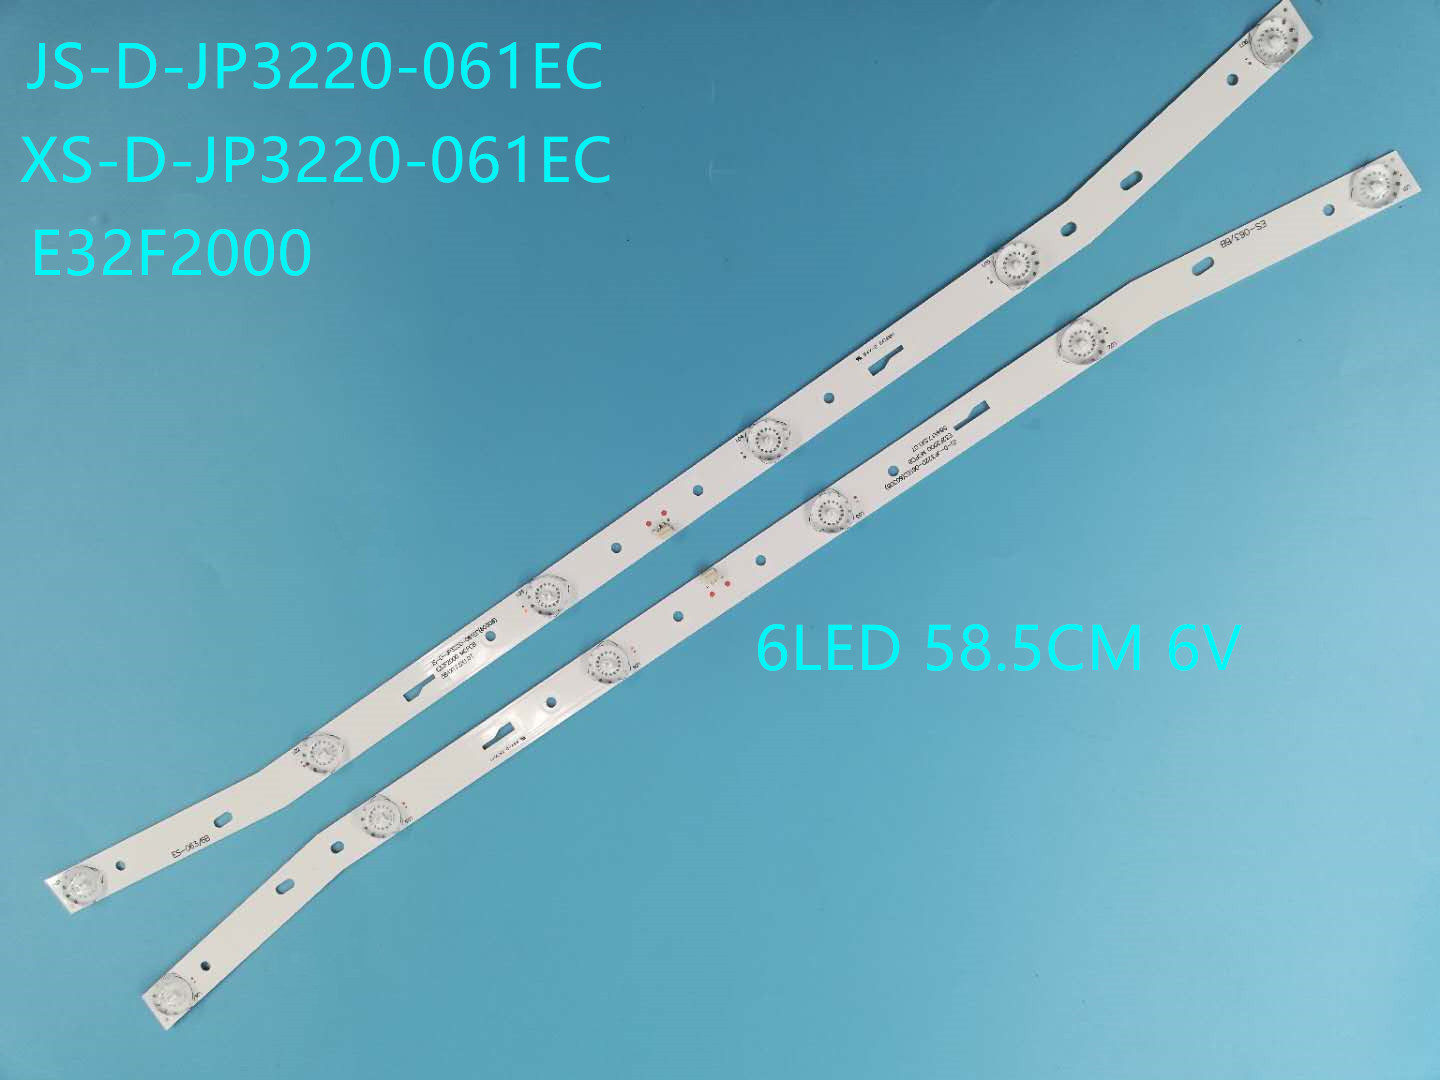 New original for Mc-20a  3210G light bar JS-D-JP3220-061EC  ms-l1160 V3 ms-l1220 V2 r72-32d04 curved panel light bar